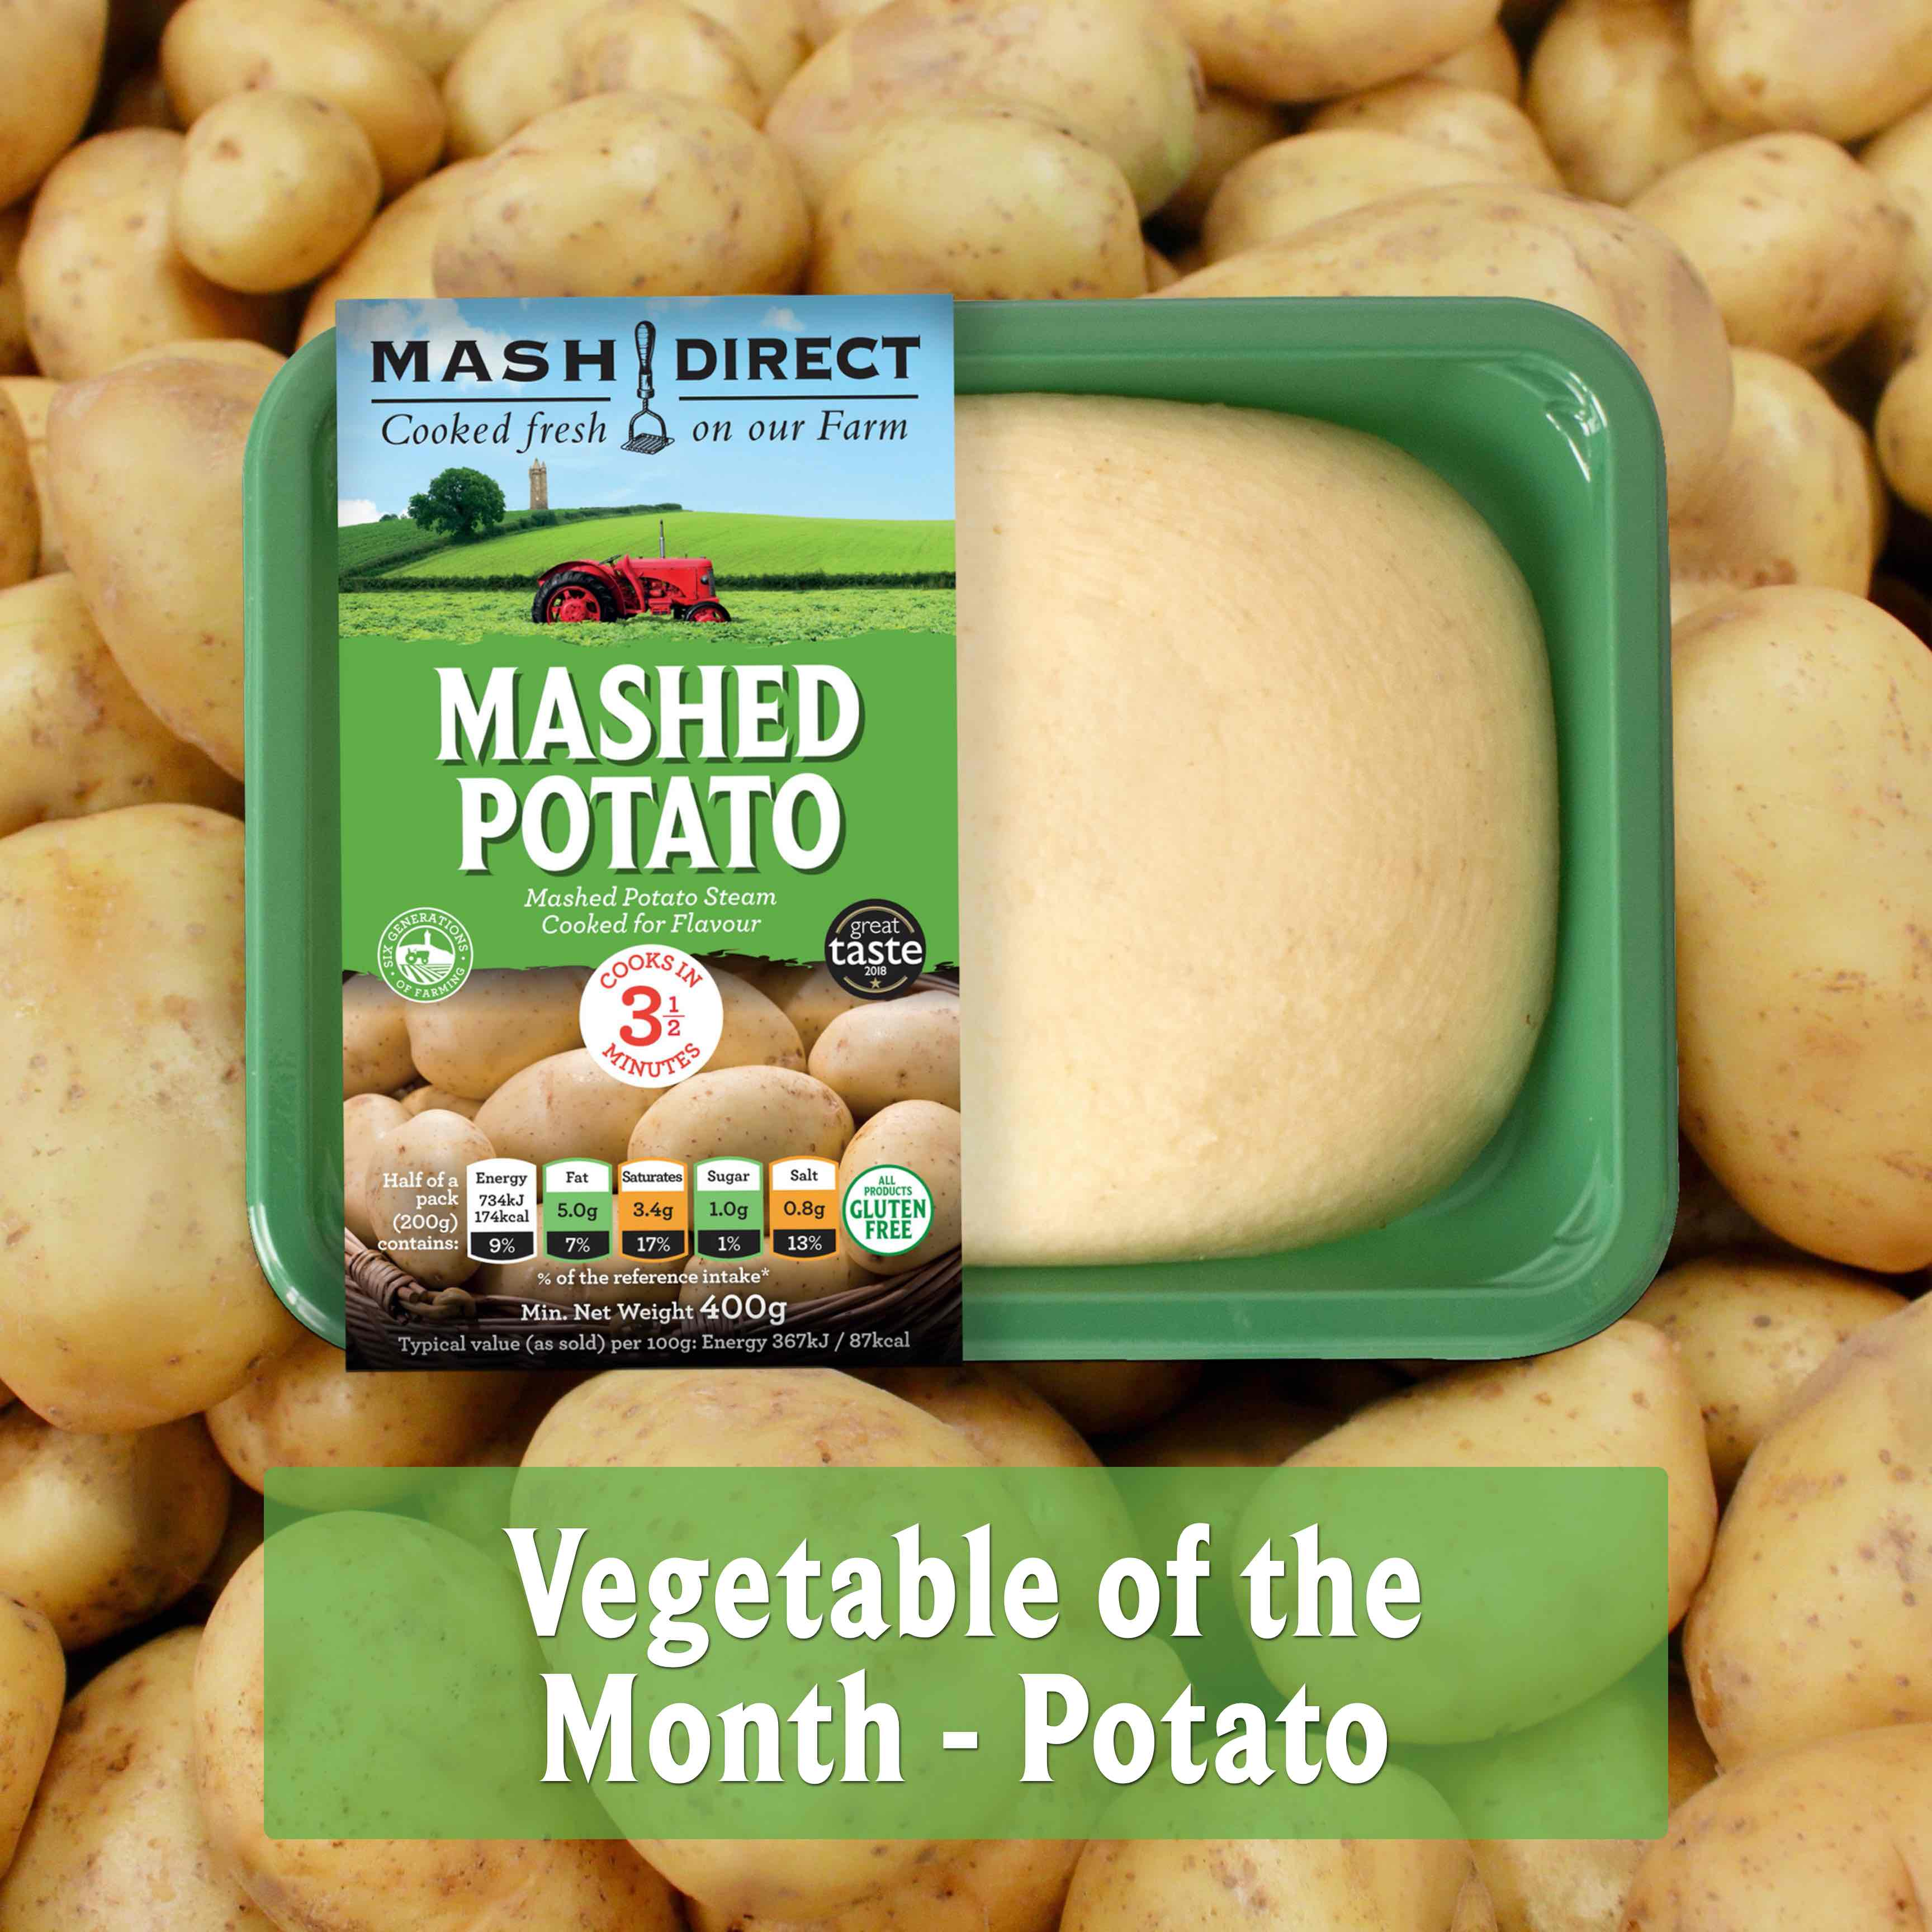 Veg of the Month: Potato